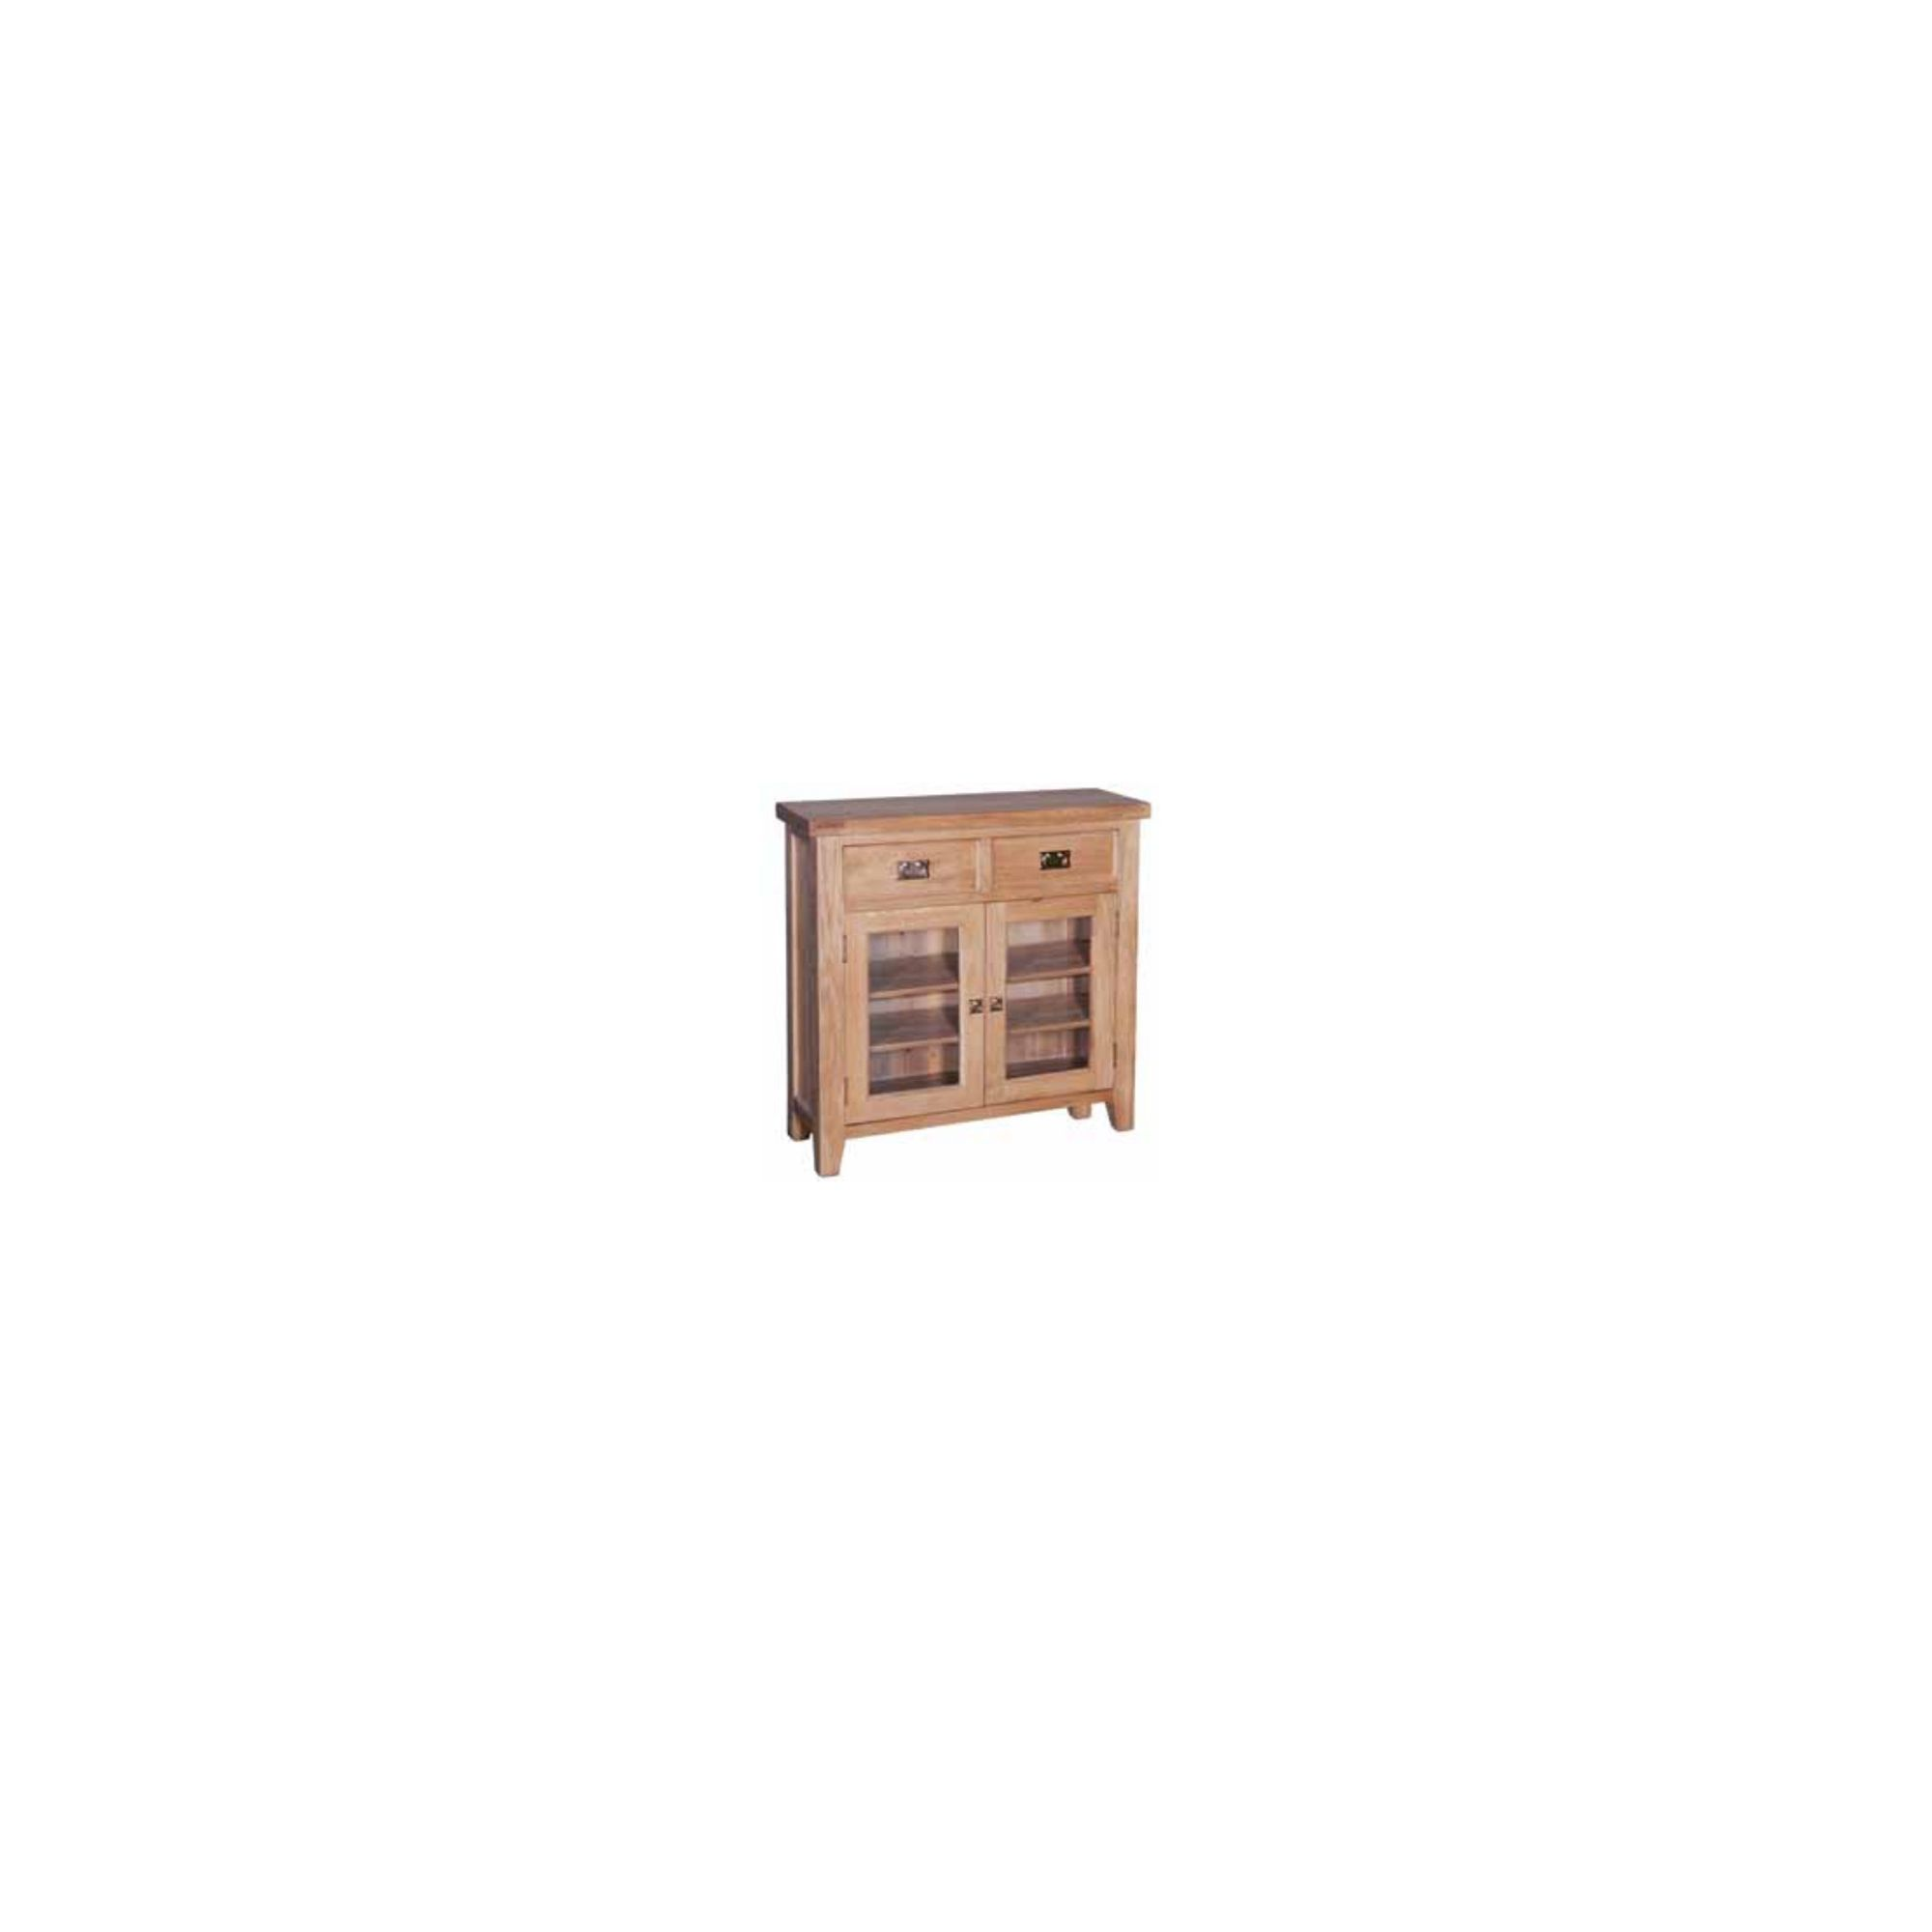 Hawkshead Elegance Small Sideboard with Glass Door at Tesco Direct